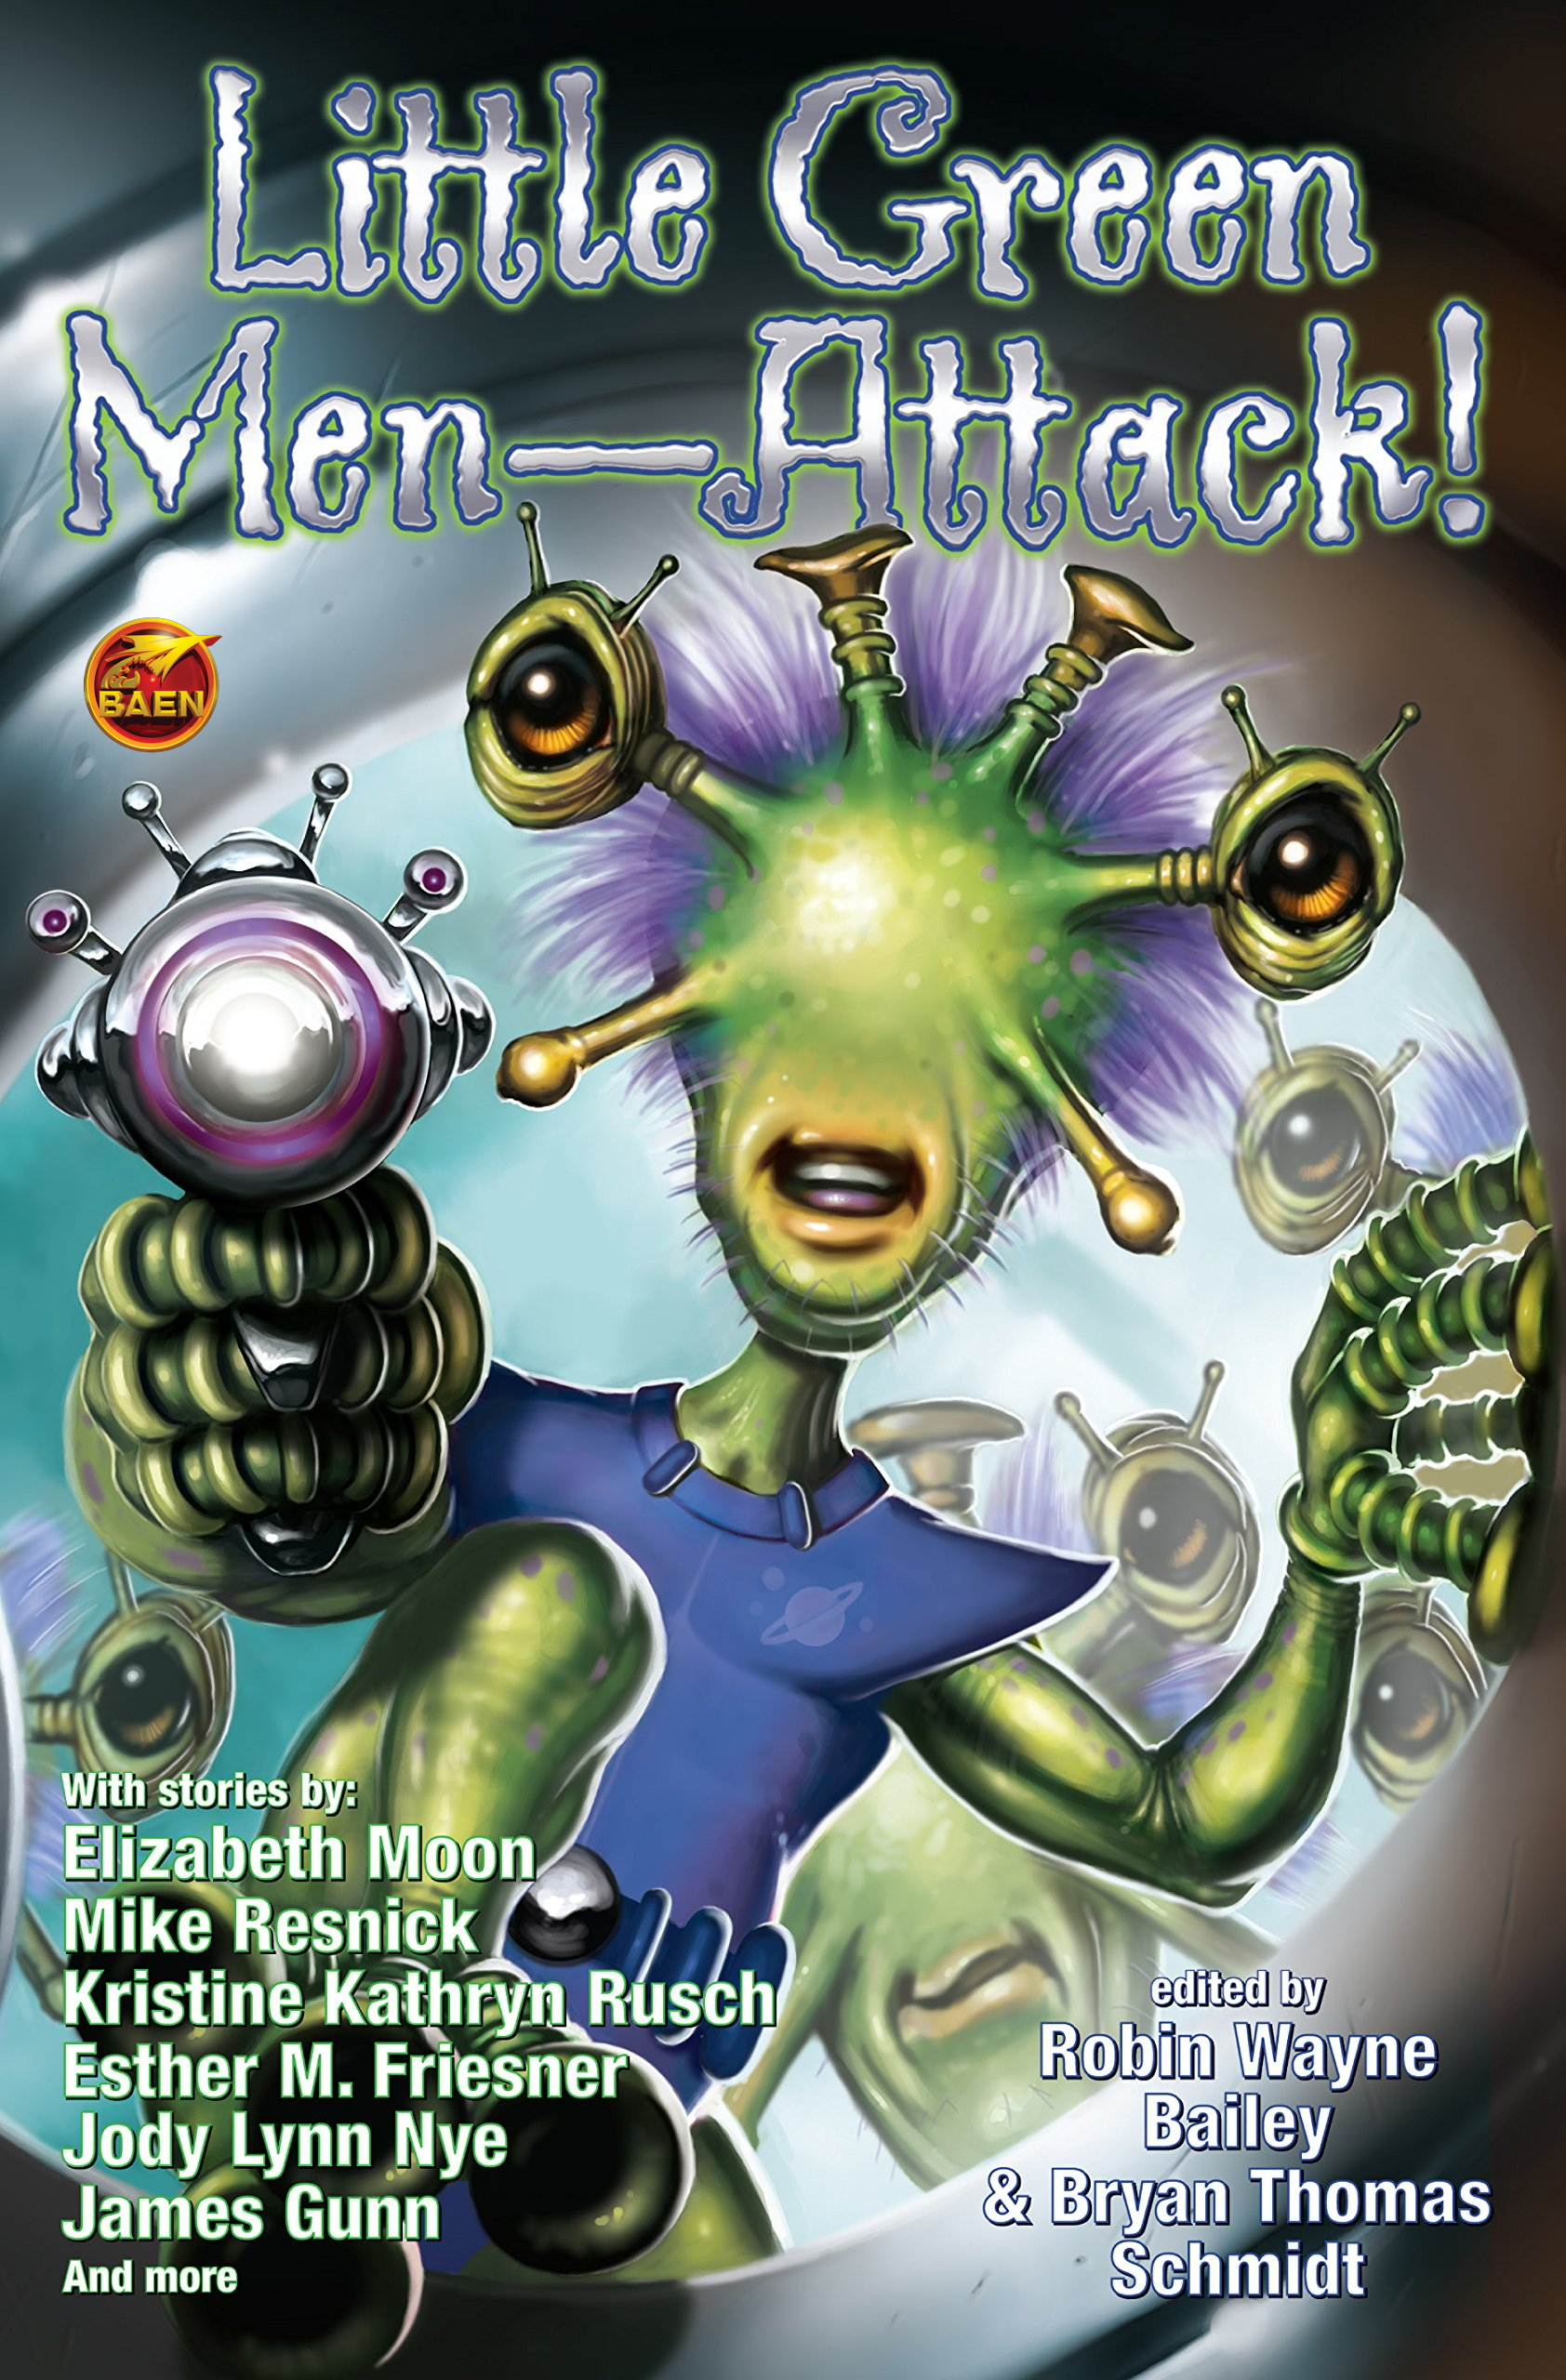 """""""Little Green Men - Attack"""" edited by Robin Wayne Bailey and Bryan Thomas Schmidt."""